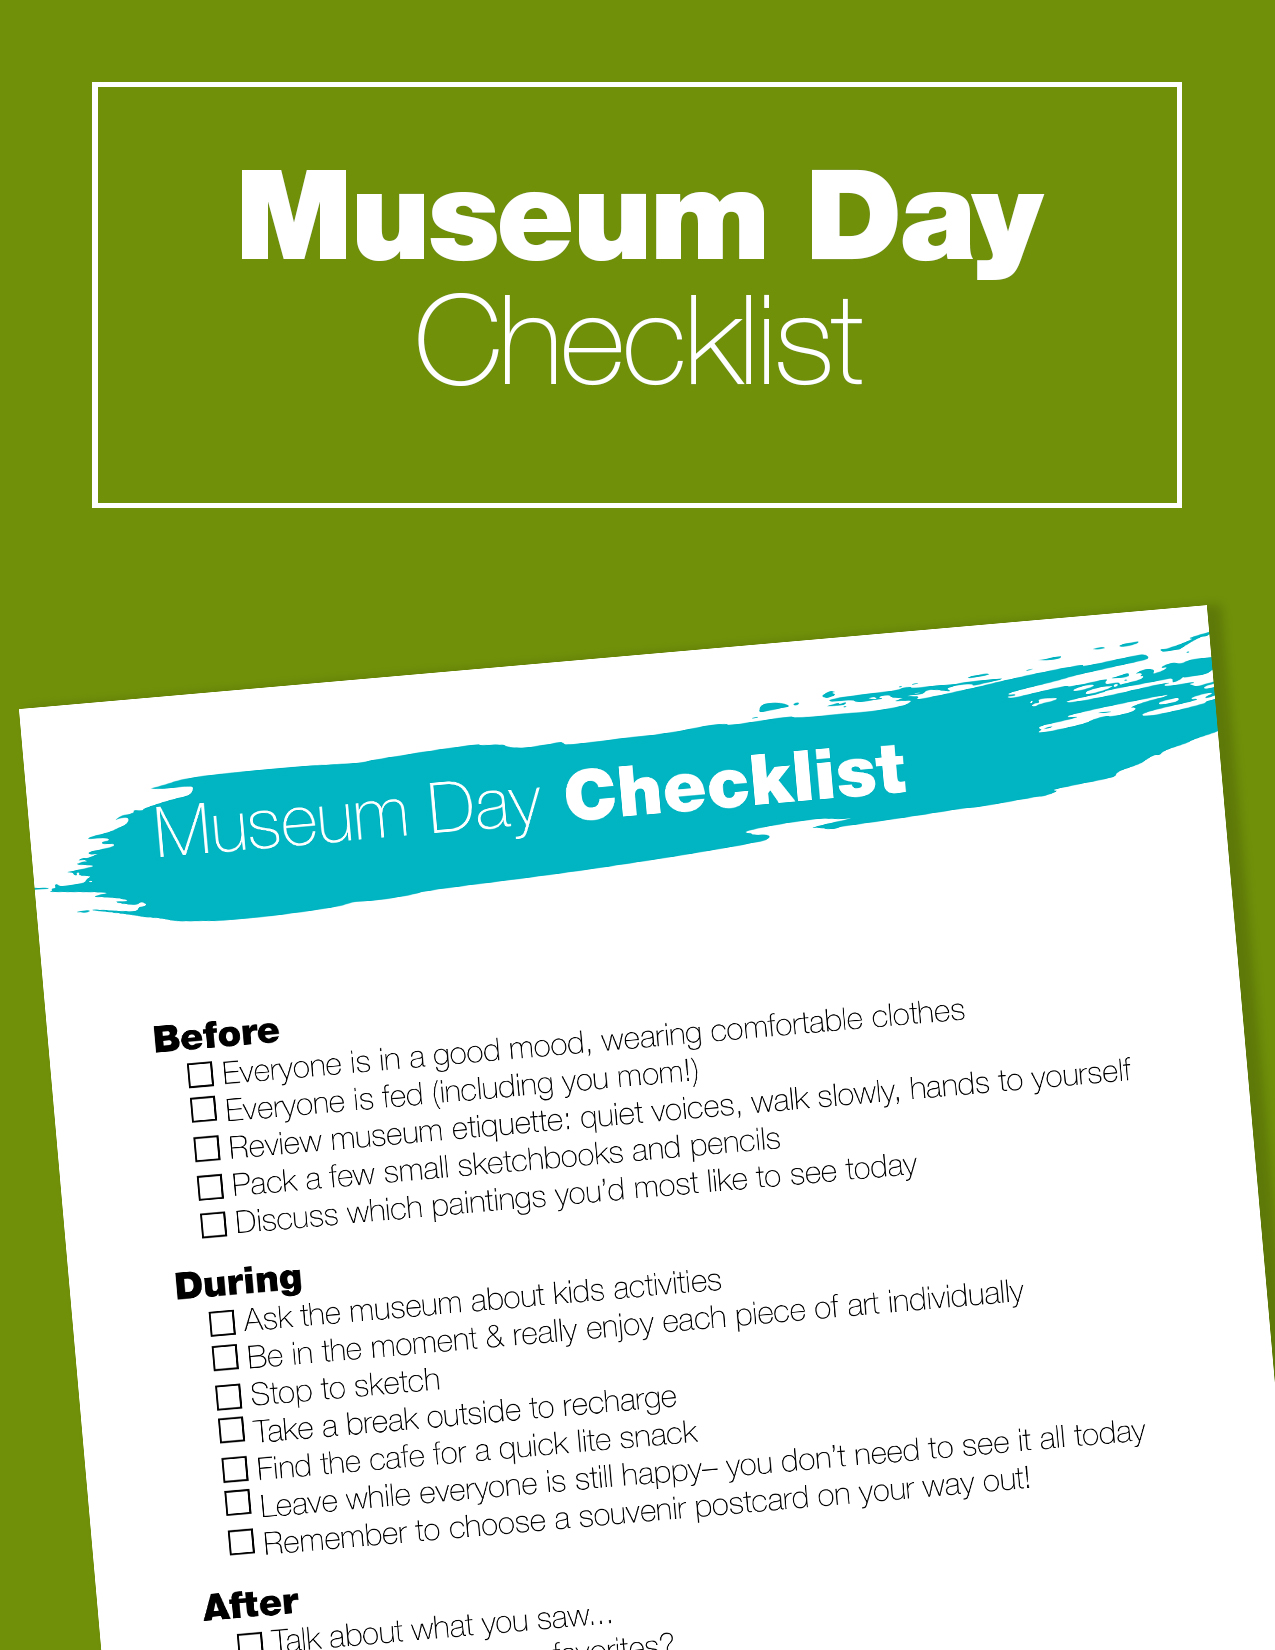 Plan a fun trip to the art museum with your kids this summer. Print this checklist to make it easy to get ready, and make the most of your trip.